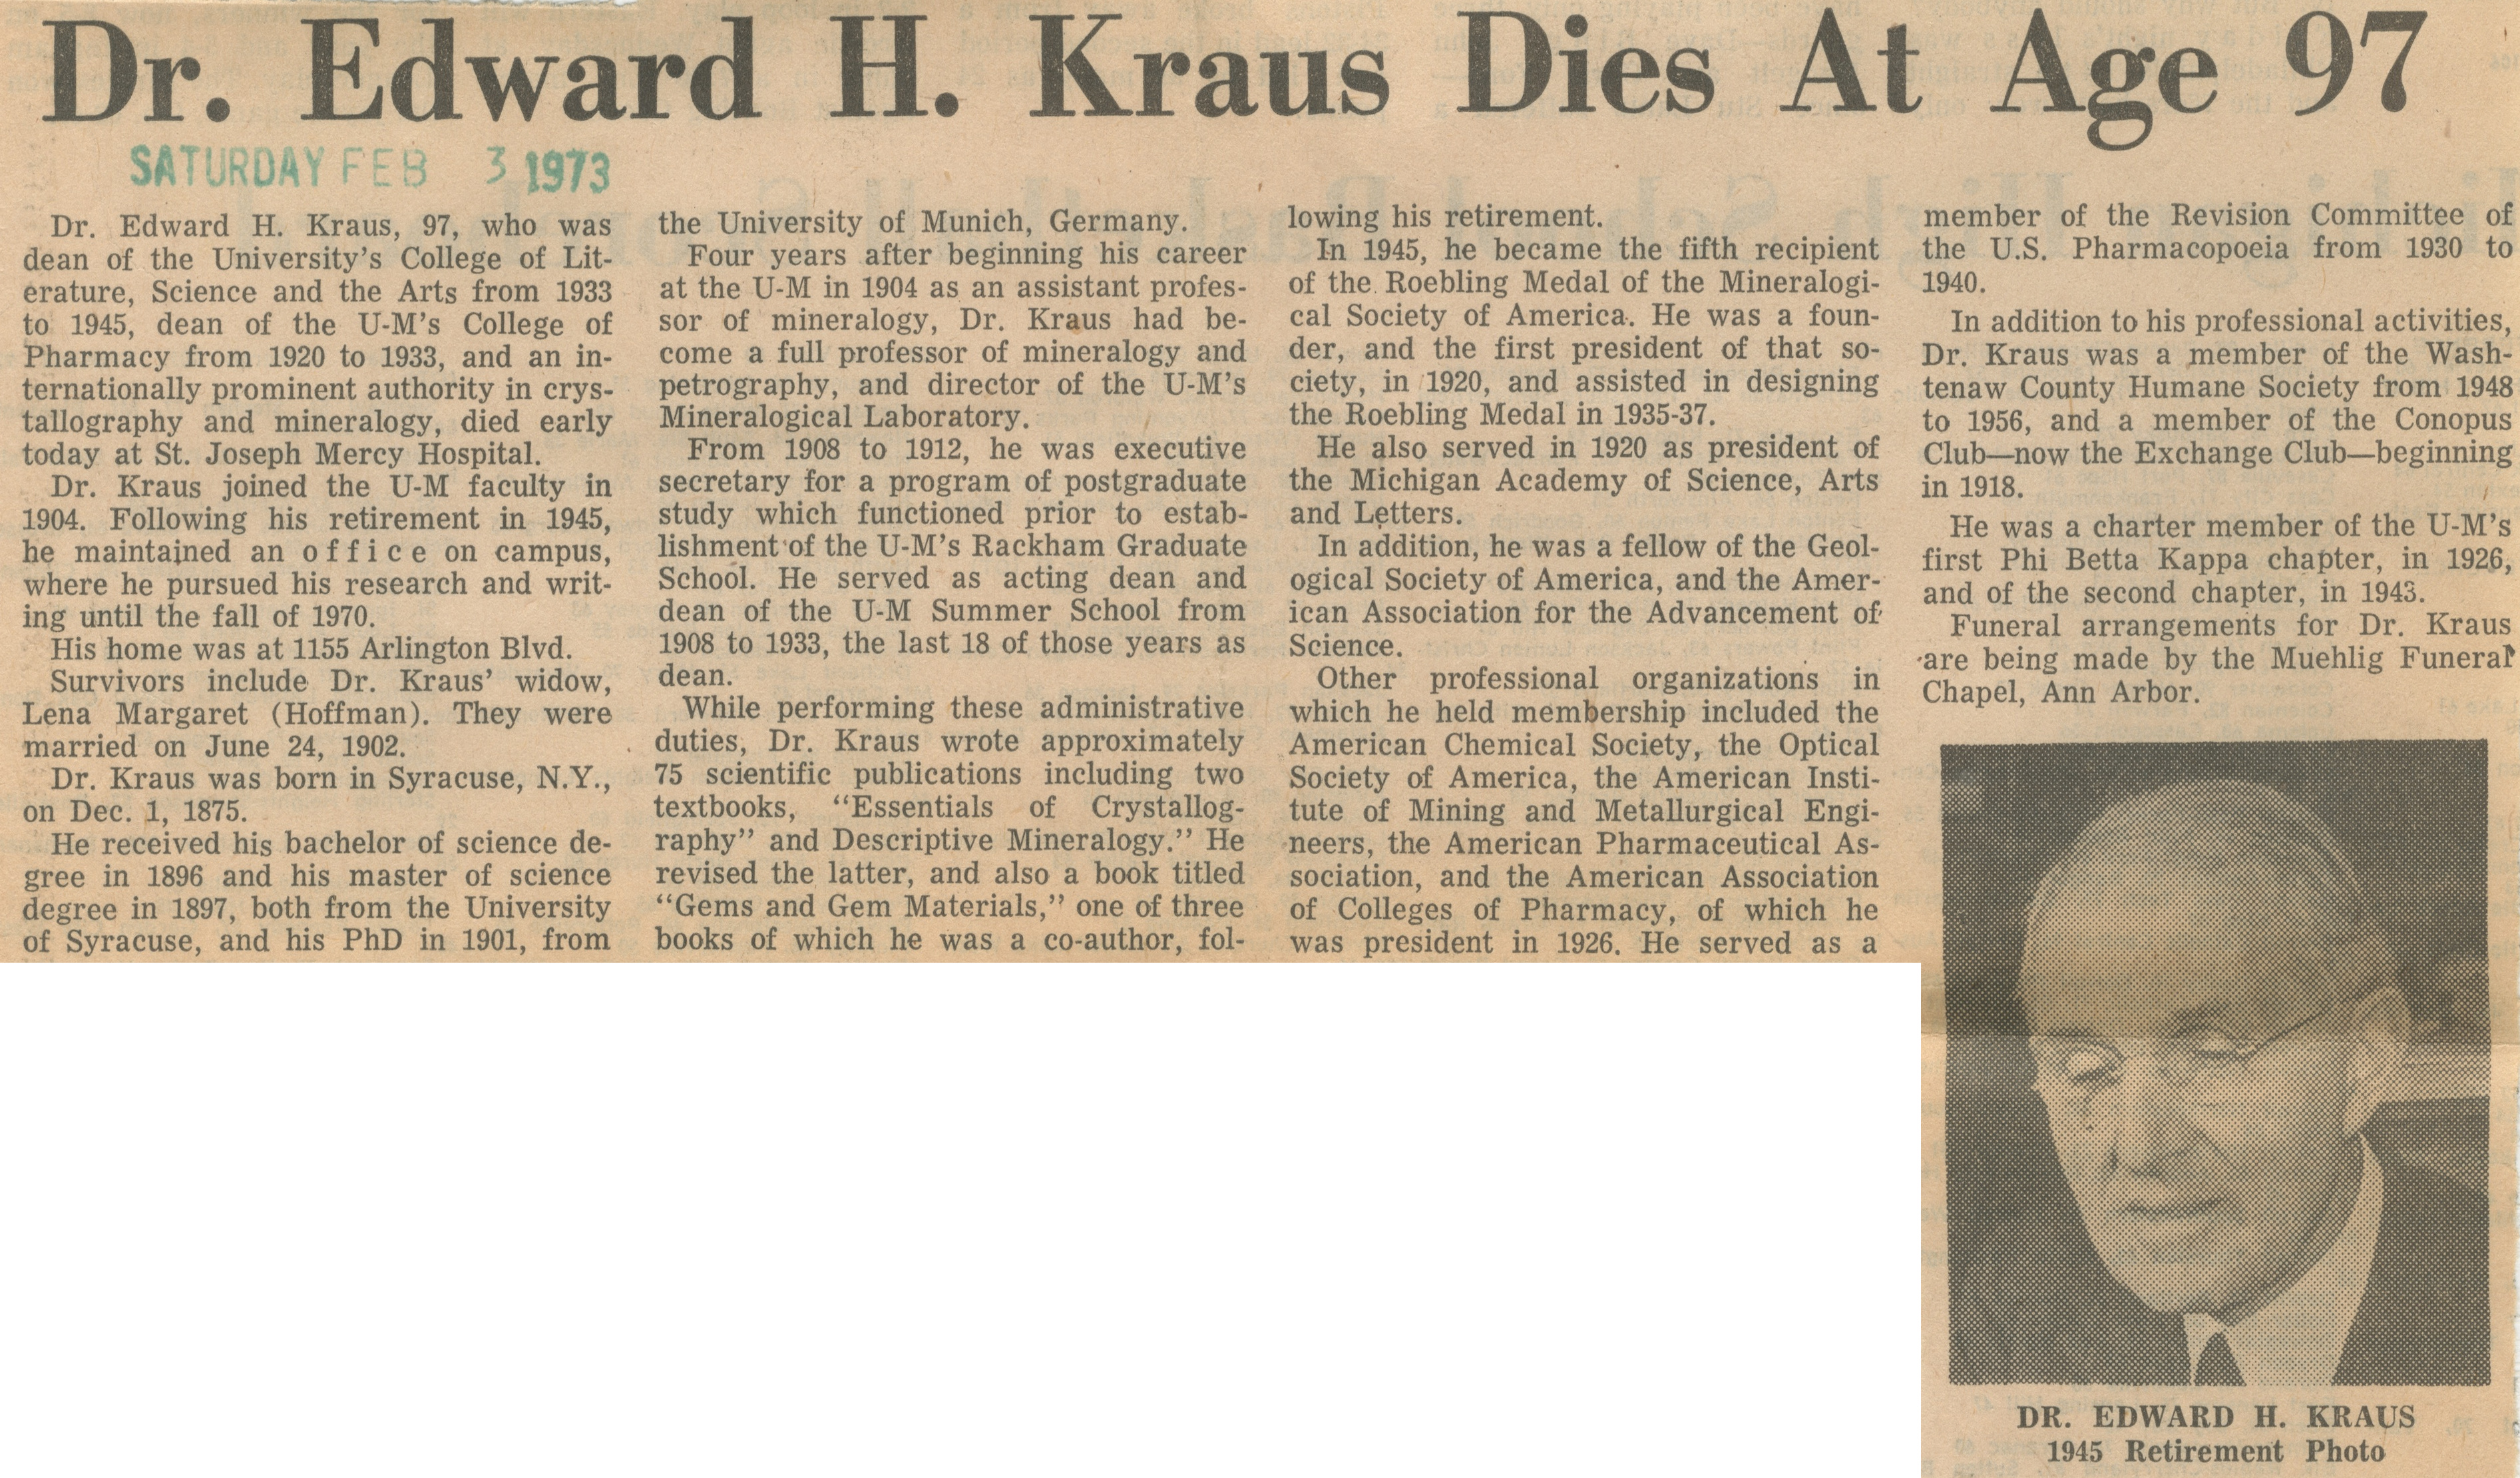 Dr. Edward H. Kraus Dies At Age 97 image